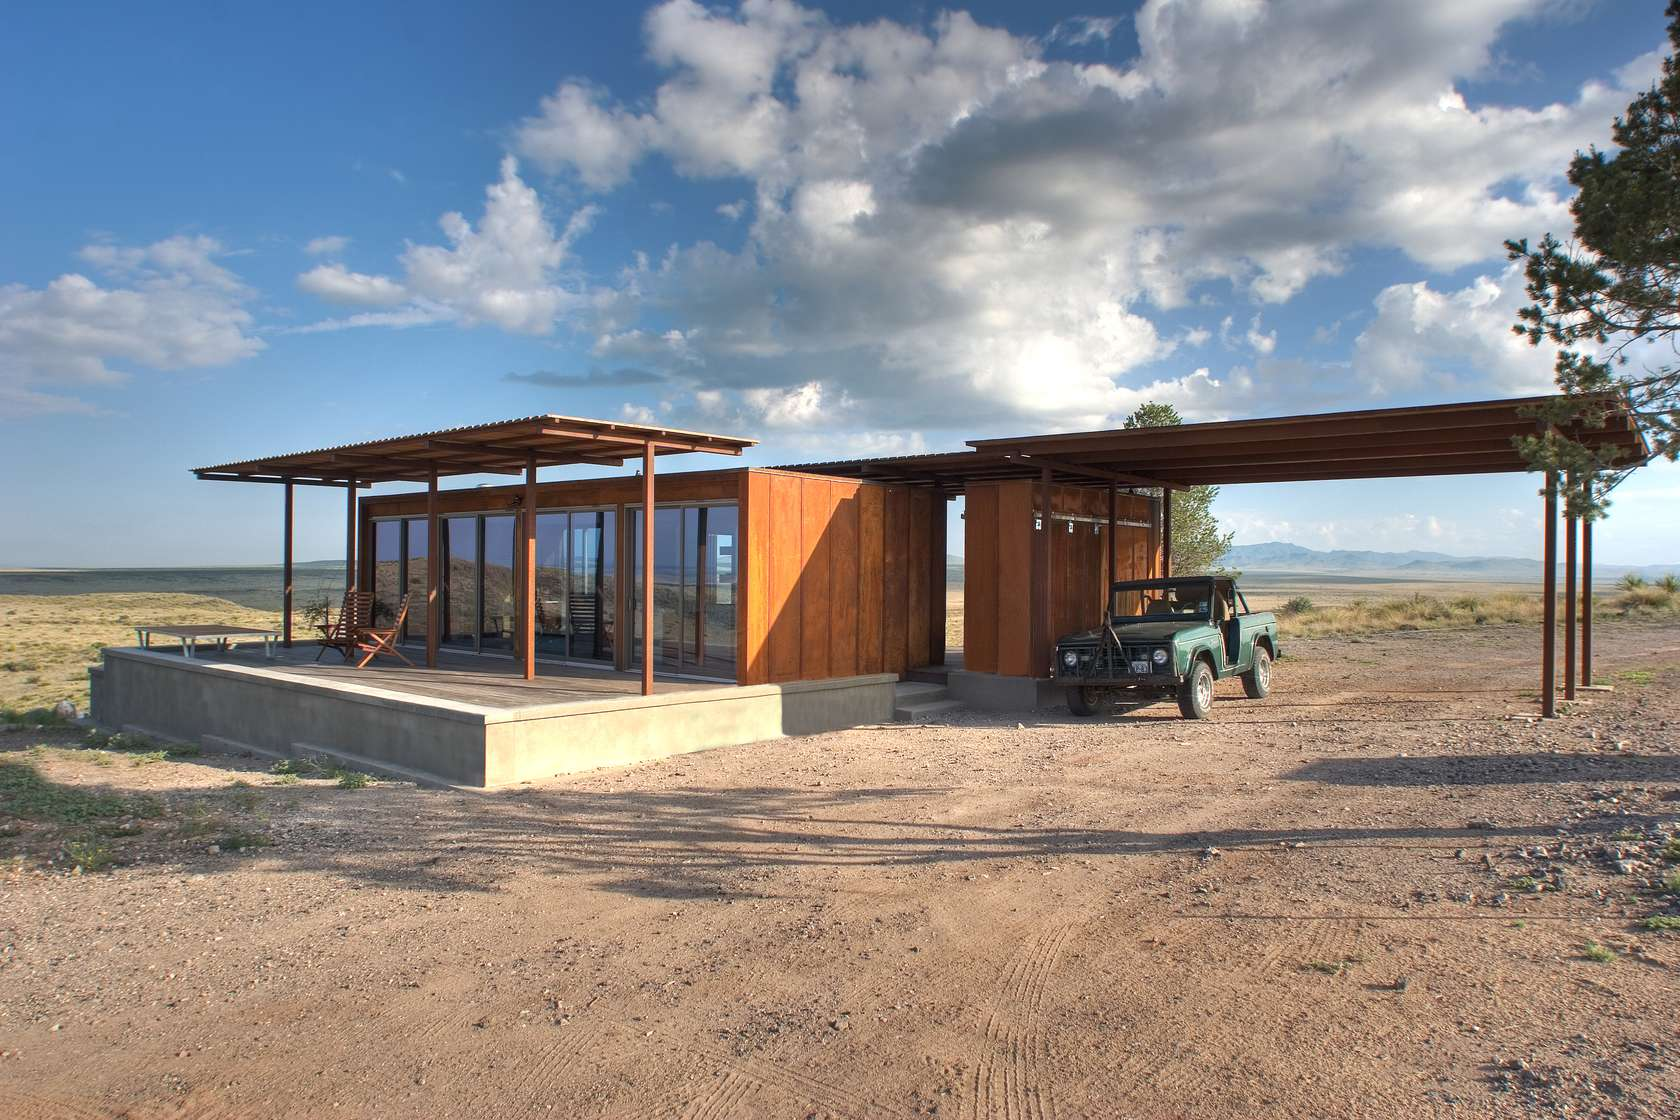 Marfa texas surprises us again adventure journal for Small house design texas